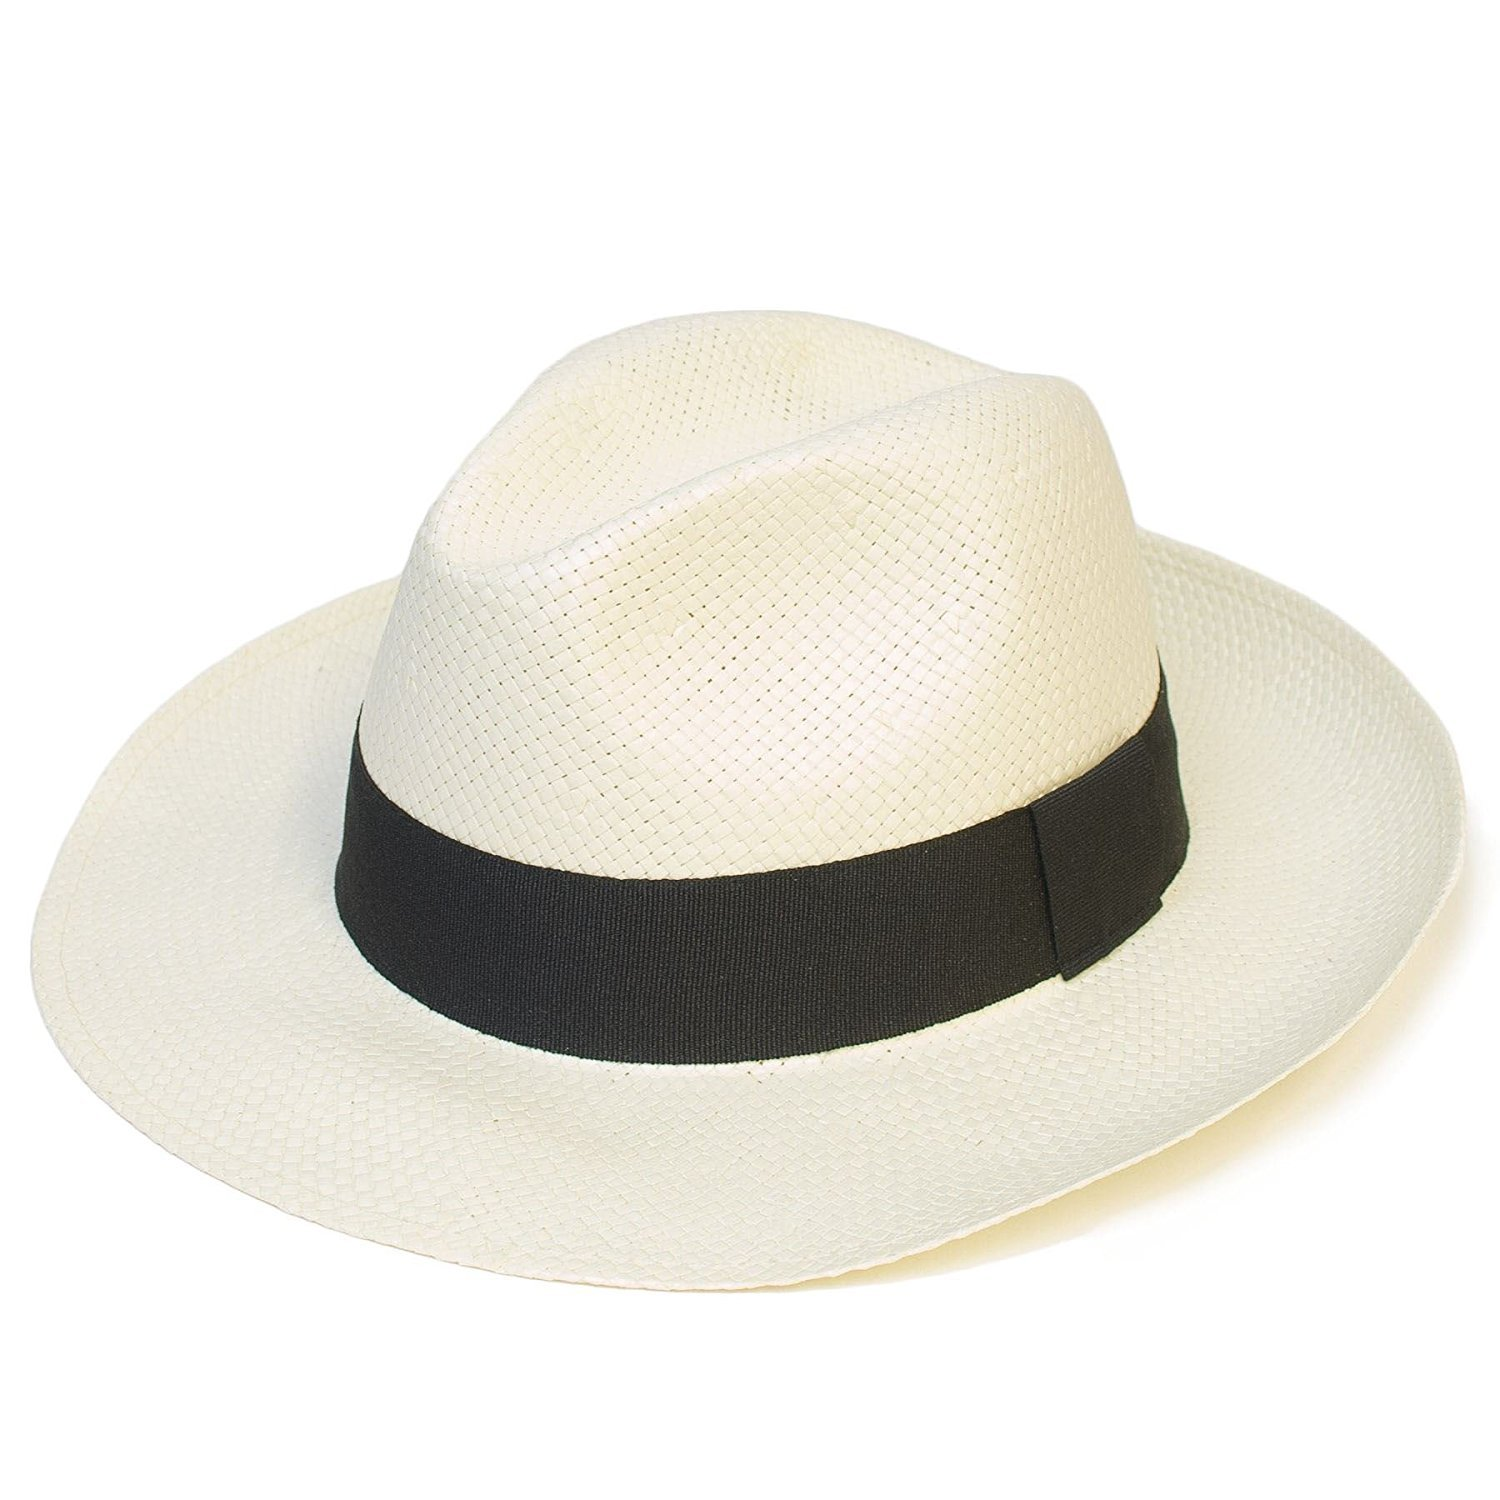 Mens Women Ladies Unisex Summer Plain Woven Panama Hat With Black Band d2d Hats 3406-3444